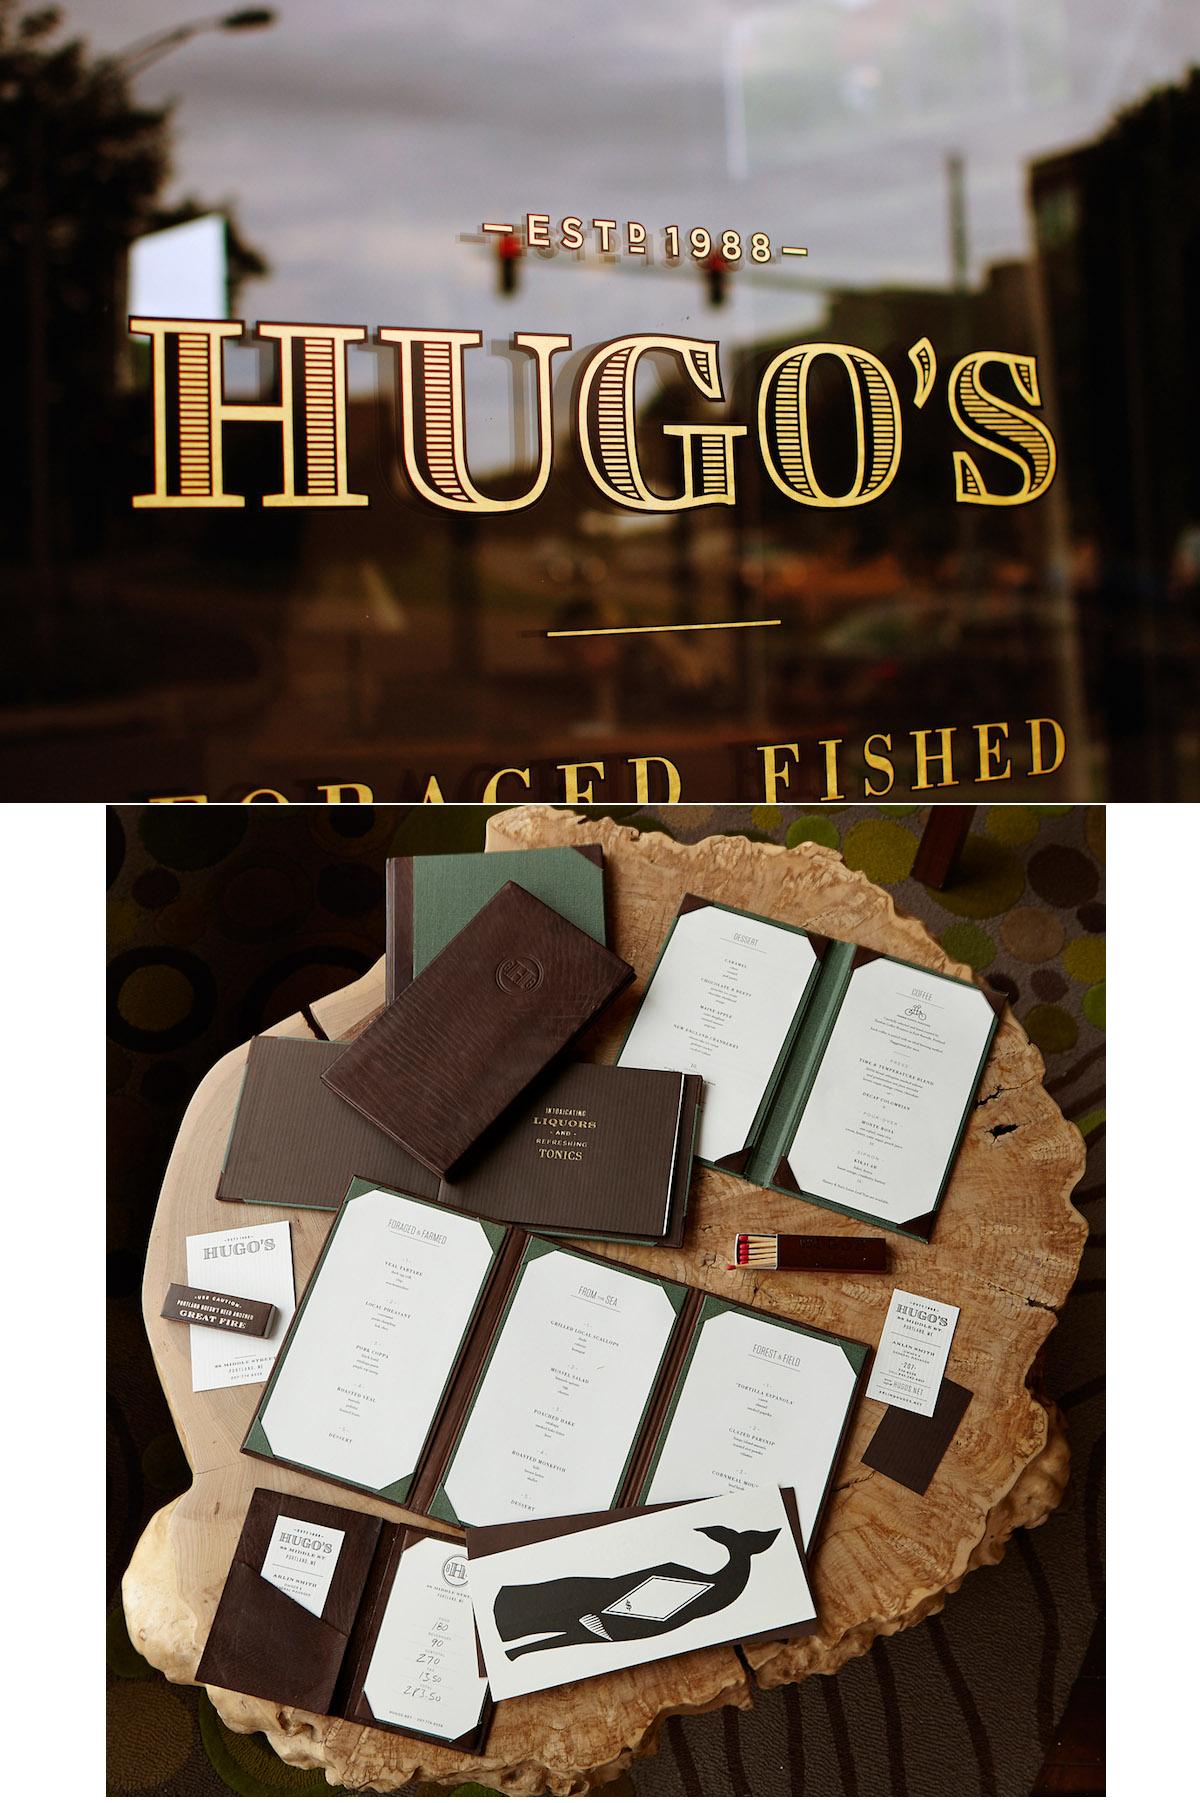 Hugo's Brand and Collateral Design by Might & Main